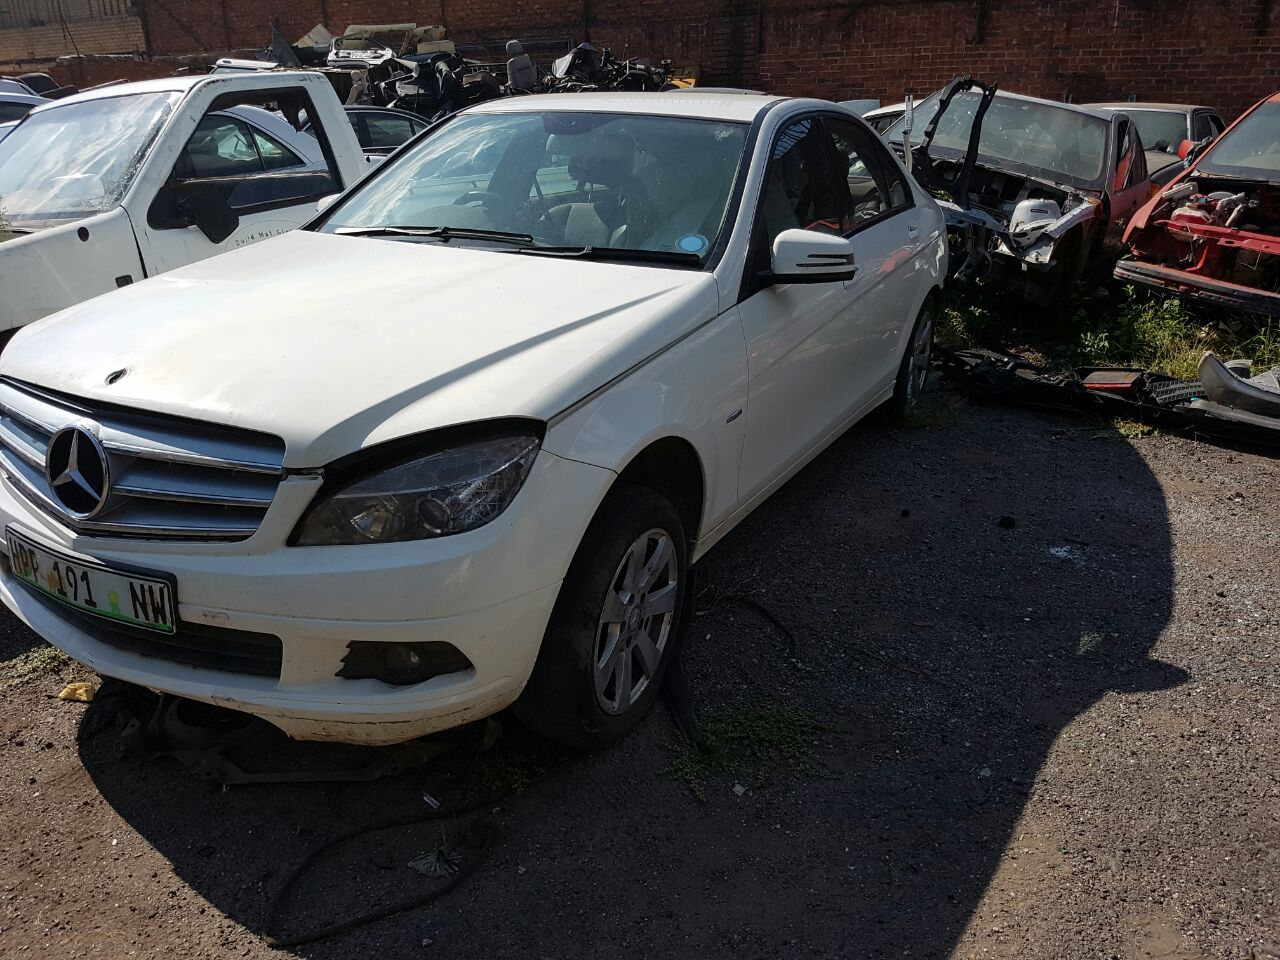 Merc w204 stripping for spares